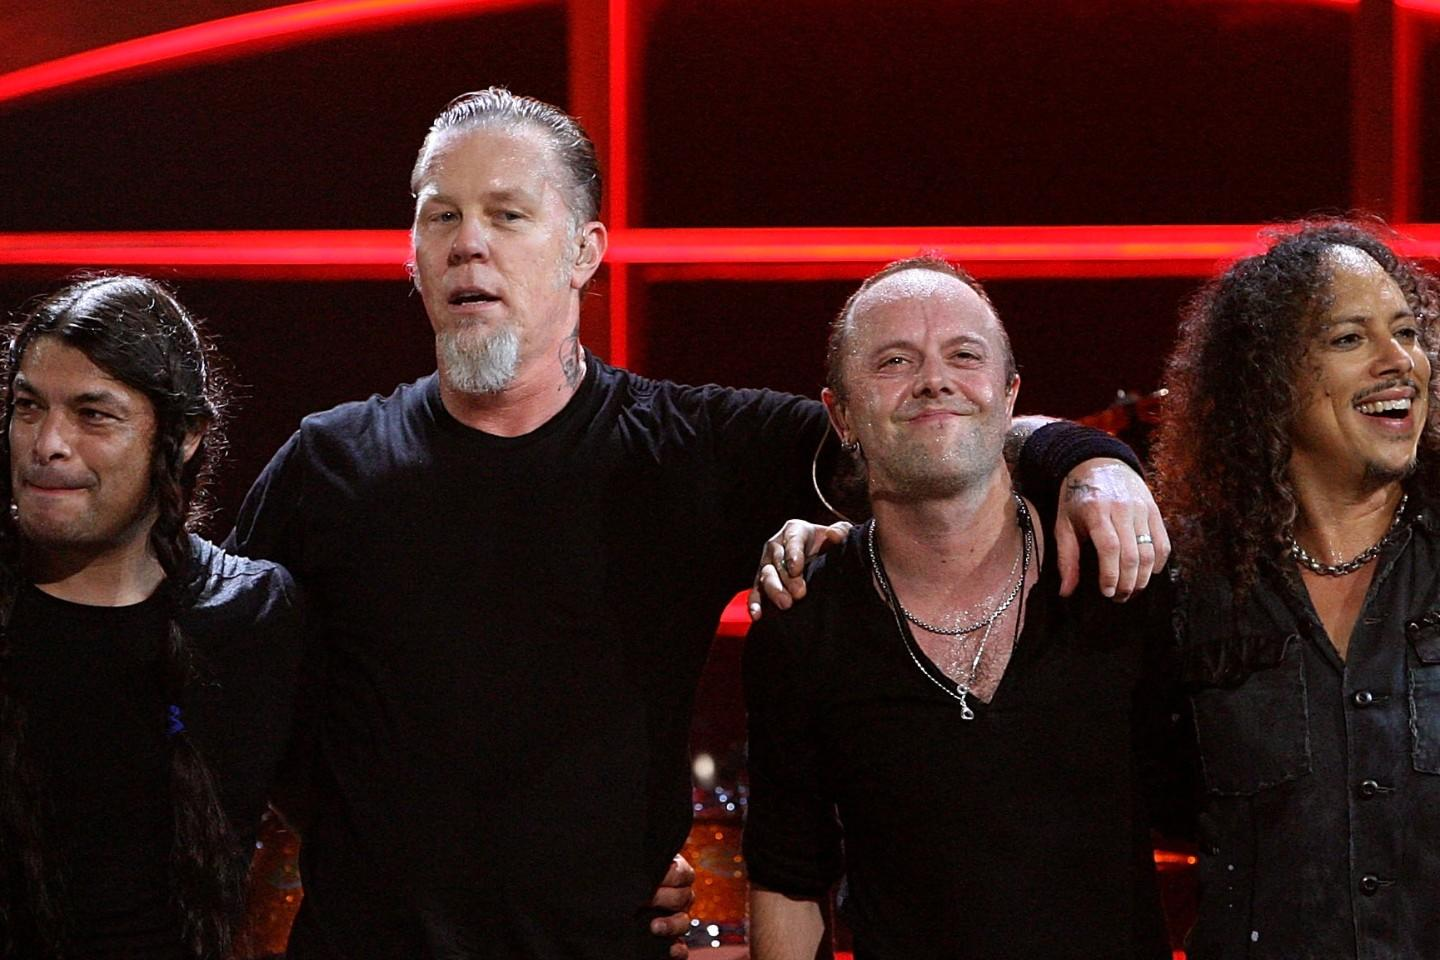 Metallica Tickets | Metallica Tour Tickets | Metallica 2019 Tickets